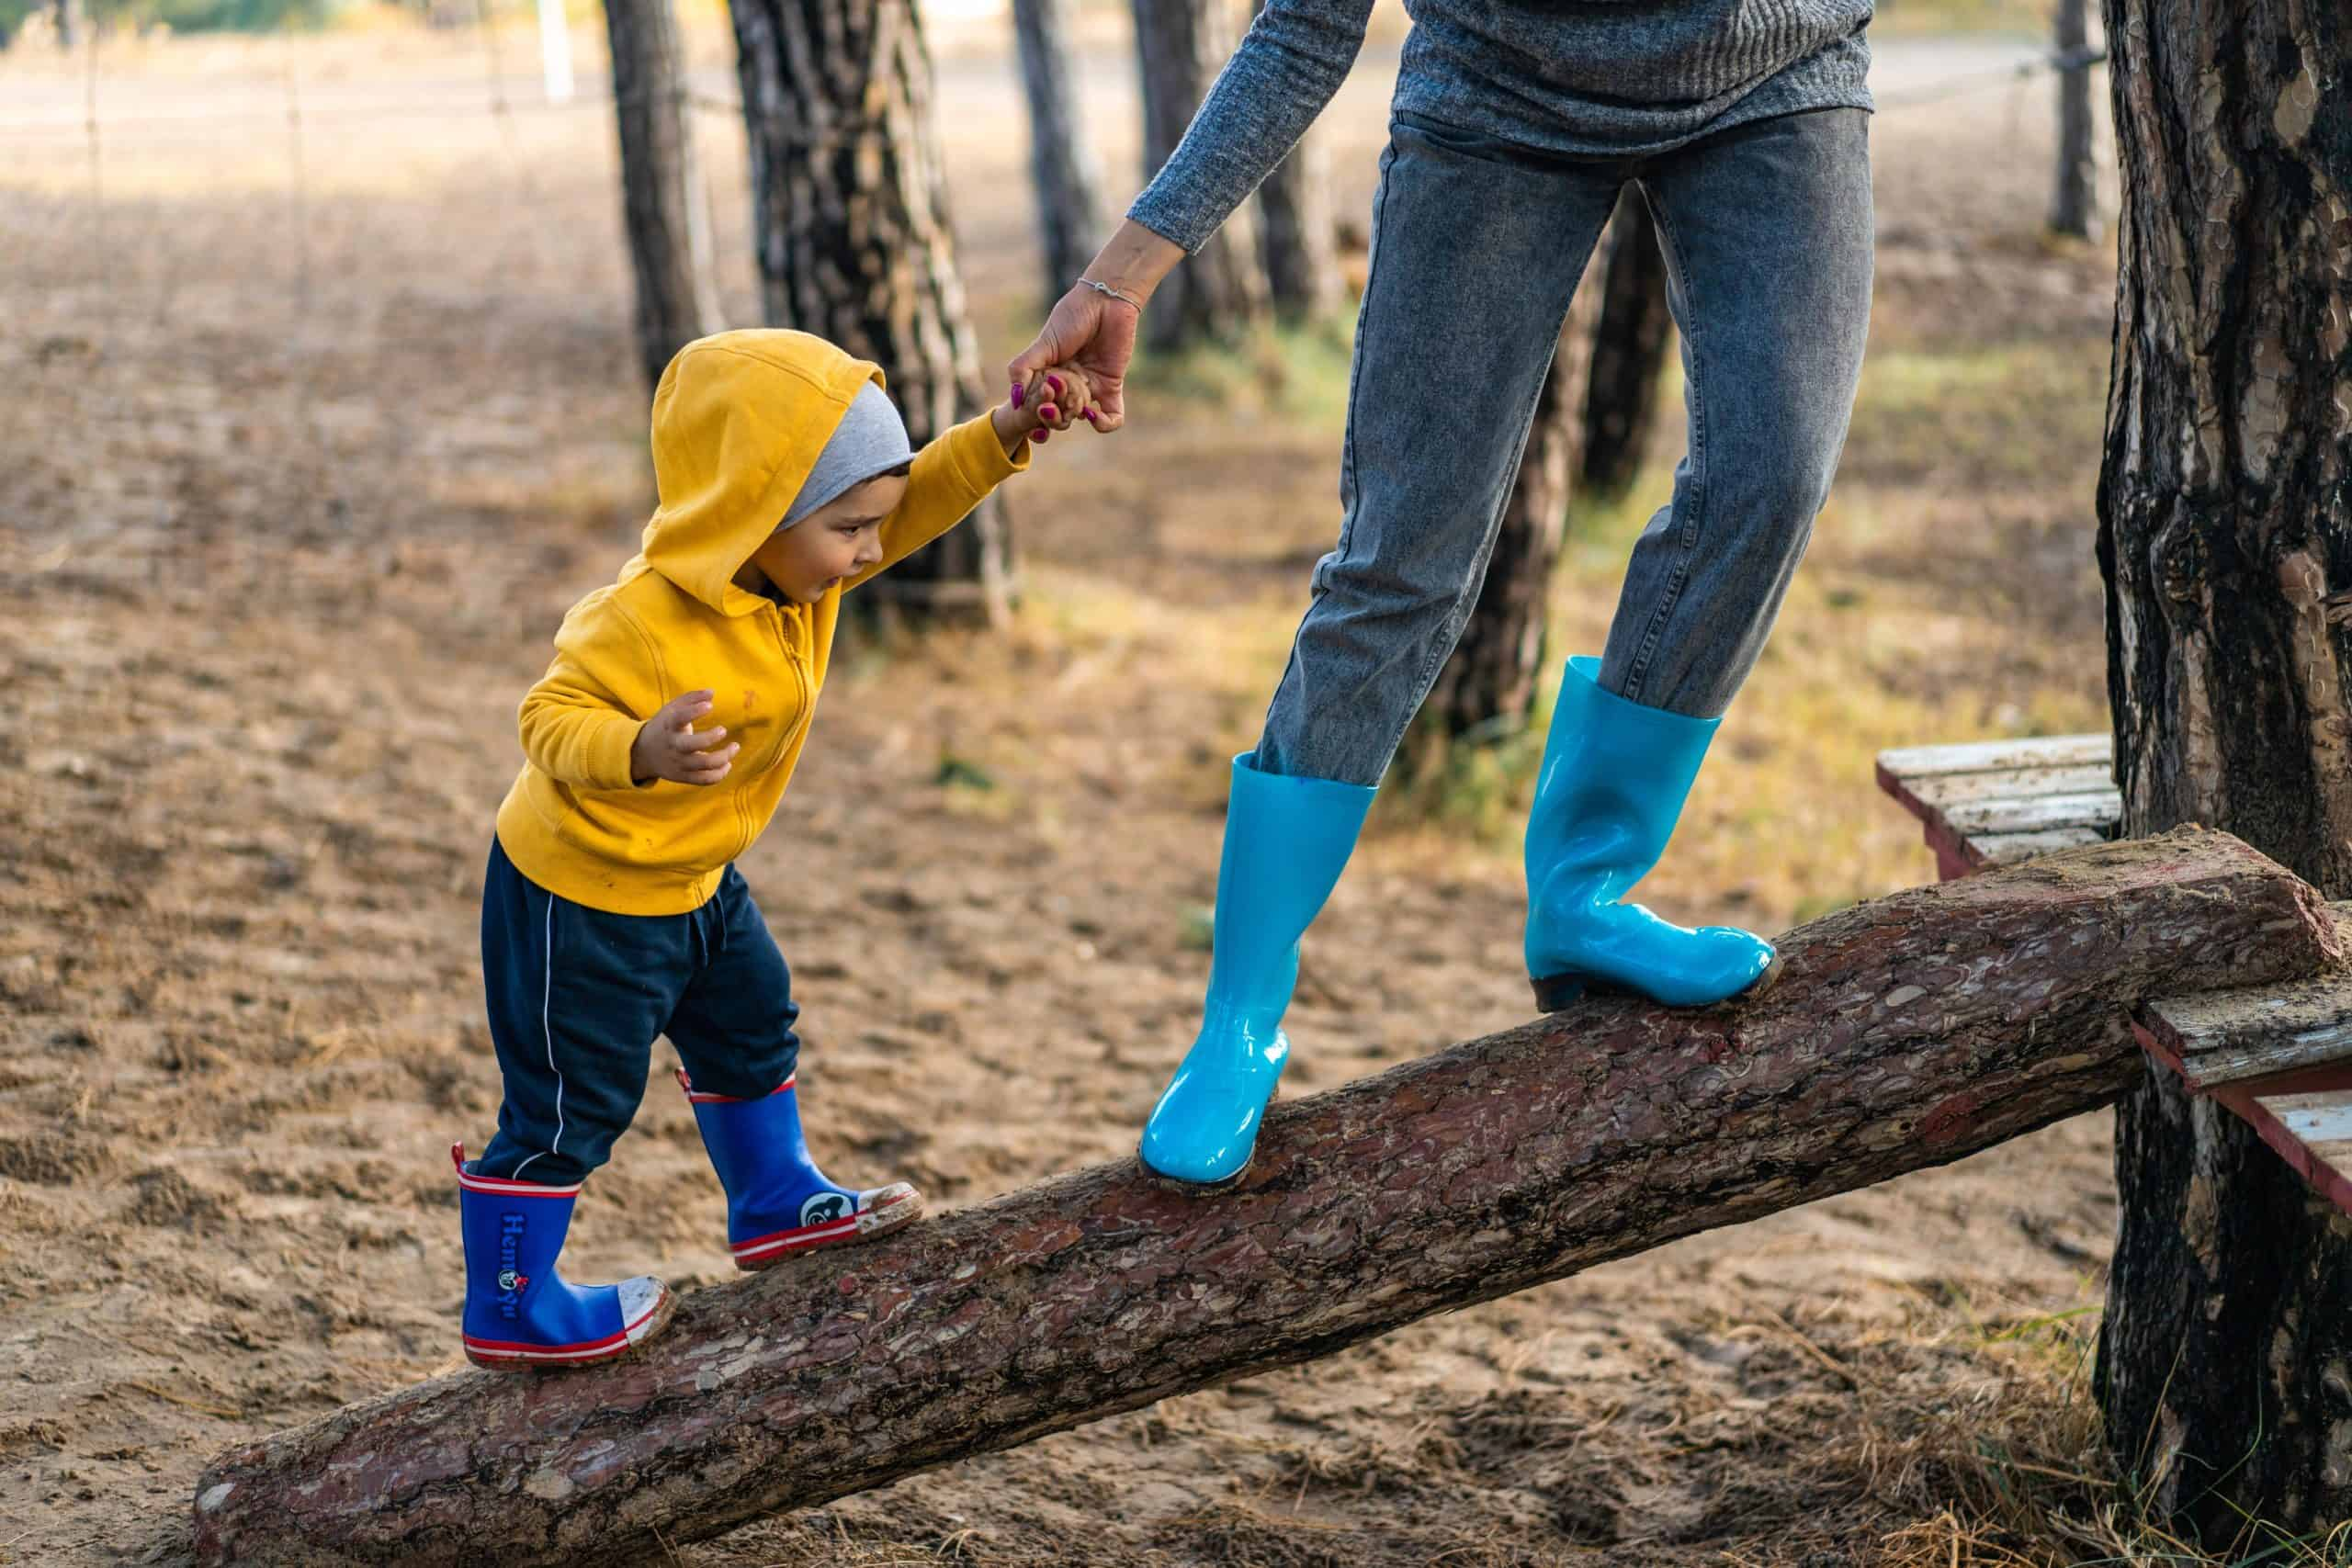 Parenting As A Teenager - Products That Can Make The Task Easy